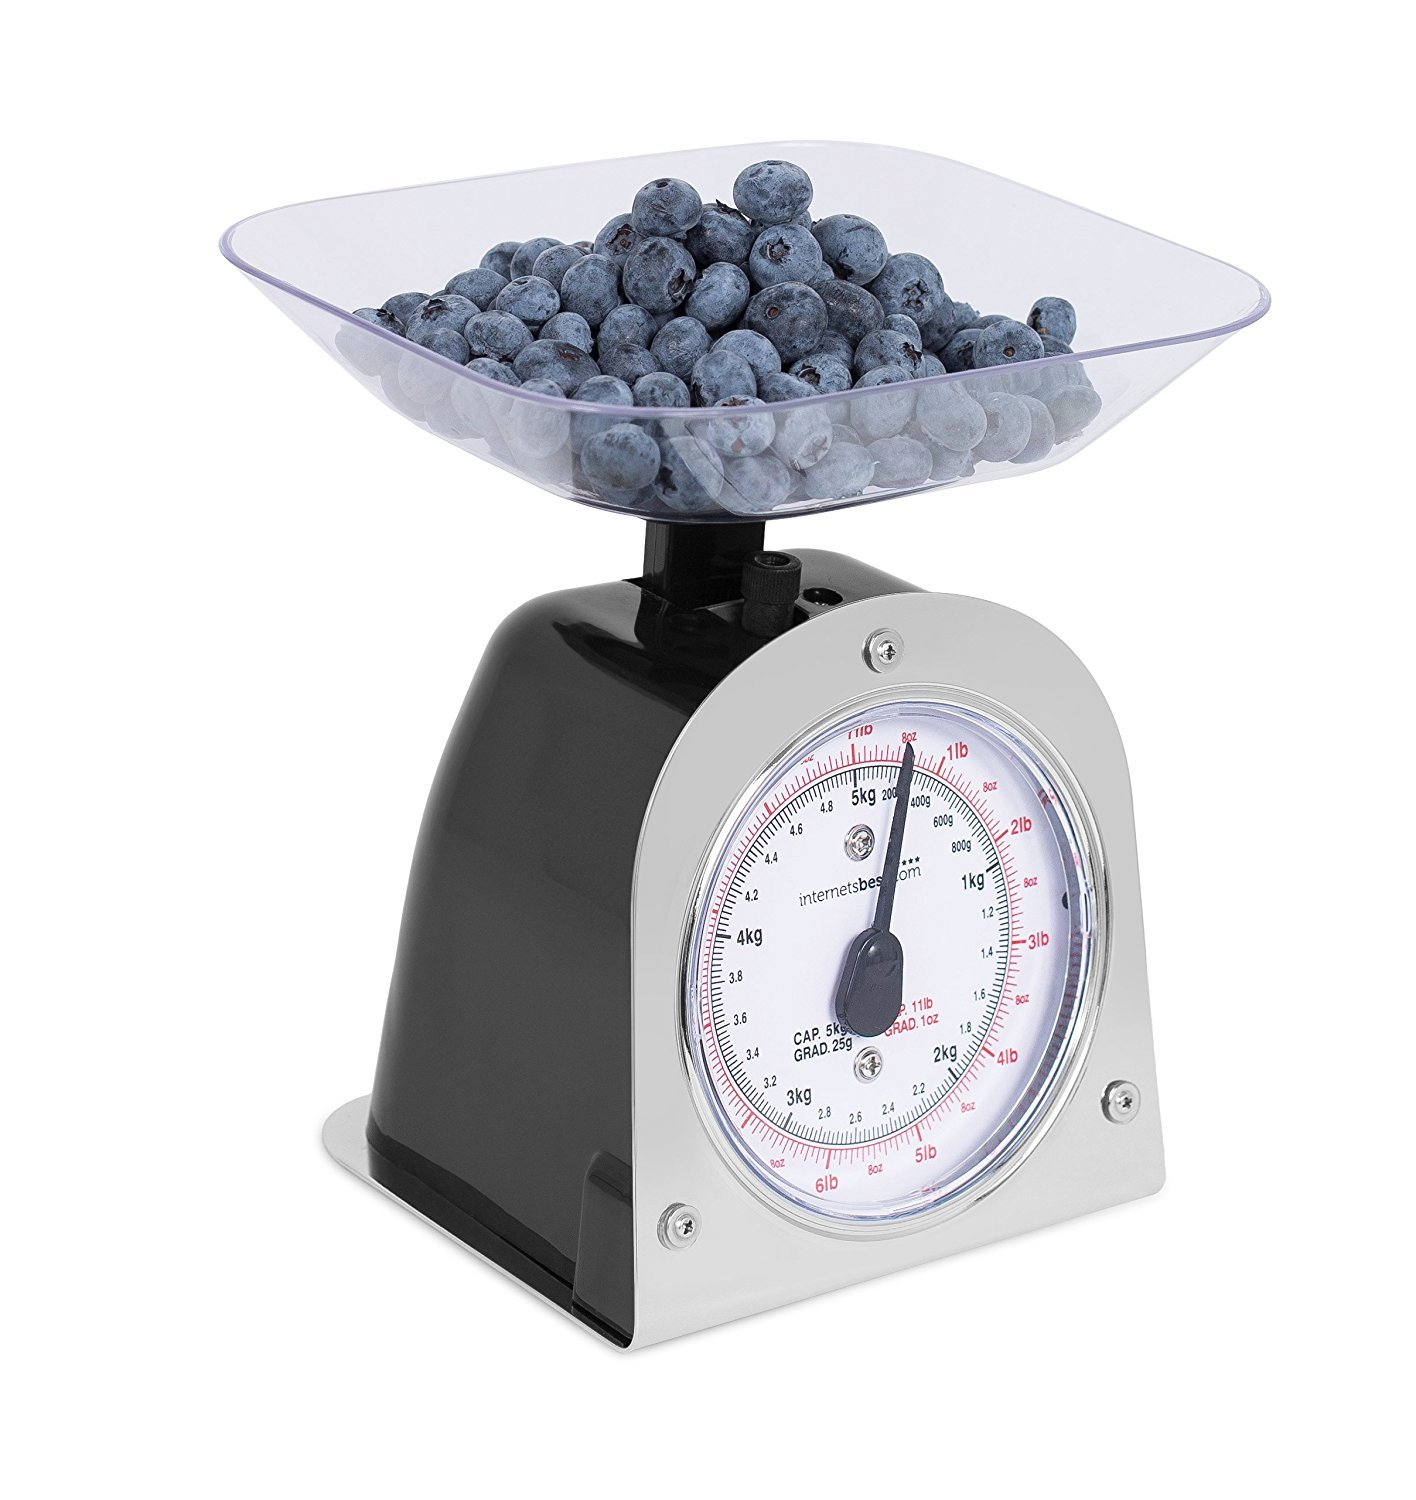 Internet's Best Mechanical Kitchen Food Weight Scale with Bowl | Accurate Measurements | Weighs Up 11 Lbs | 1KG - 5KG Internet's Best